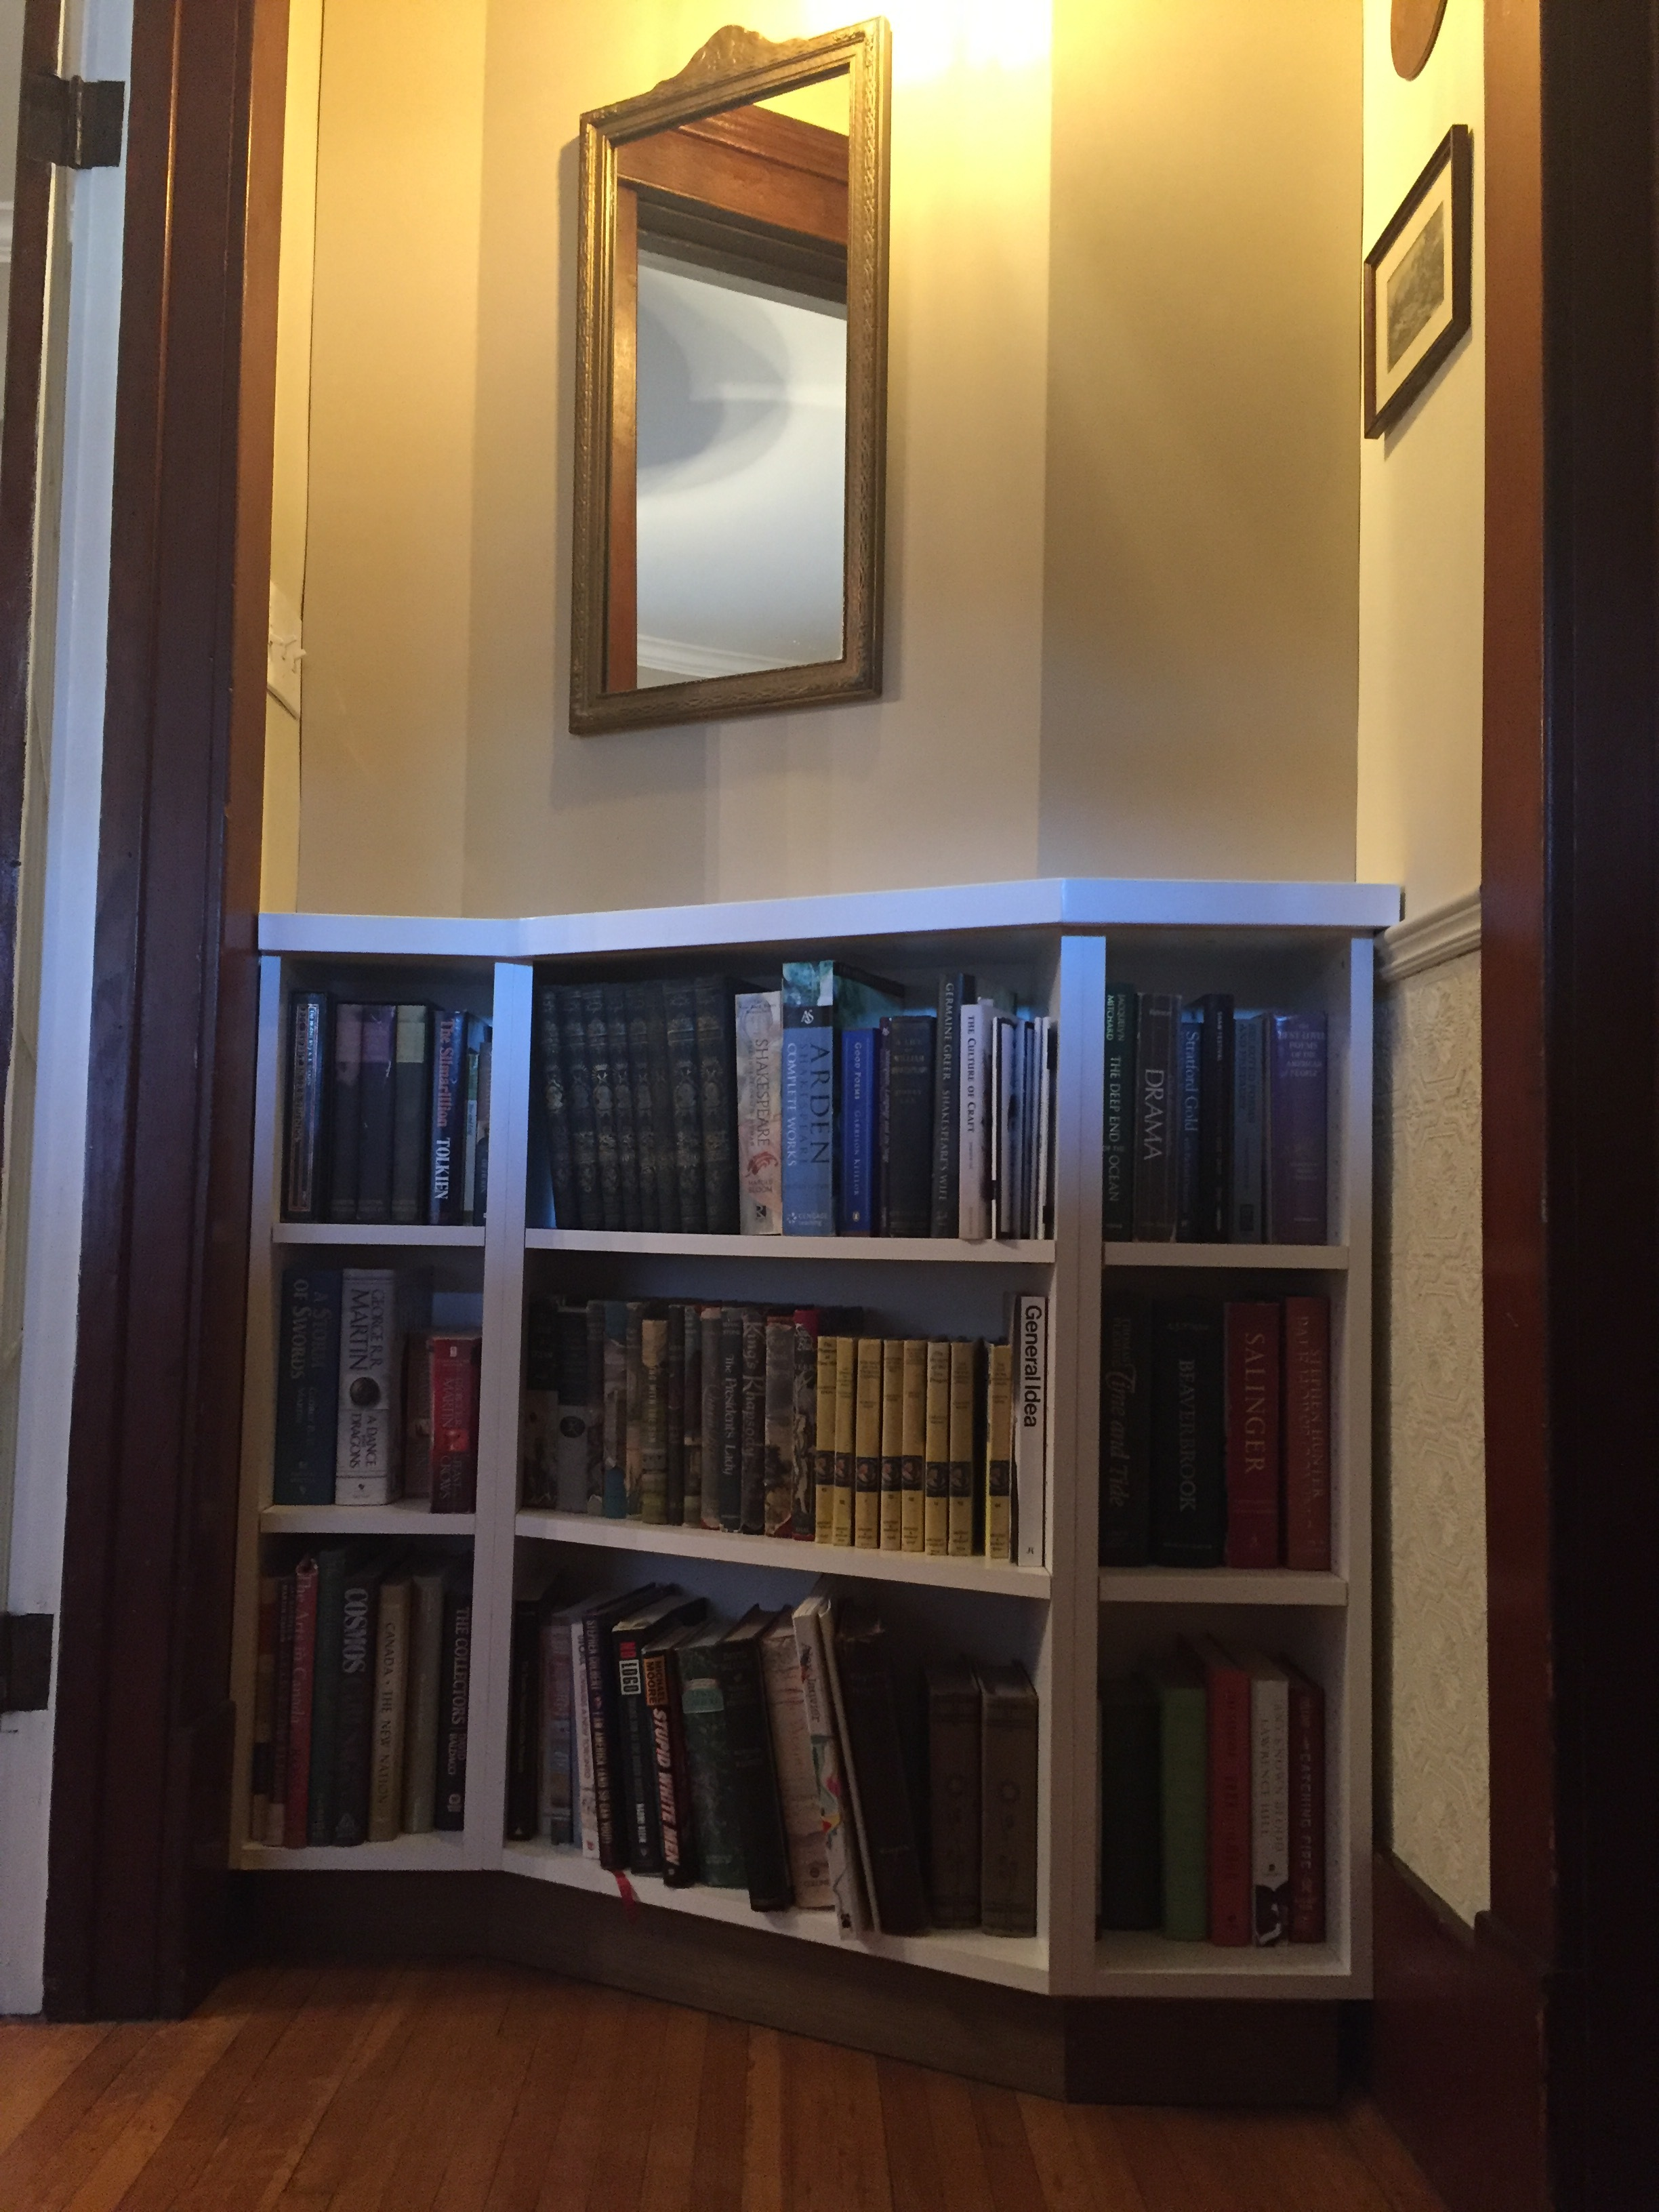 [image description: a small foyer with a curved, Z-shaped wall. A white bookshelf has been custom built to fit the space.]